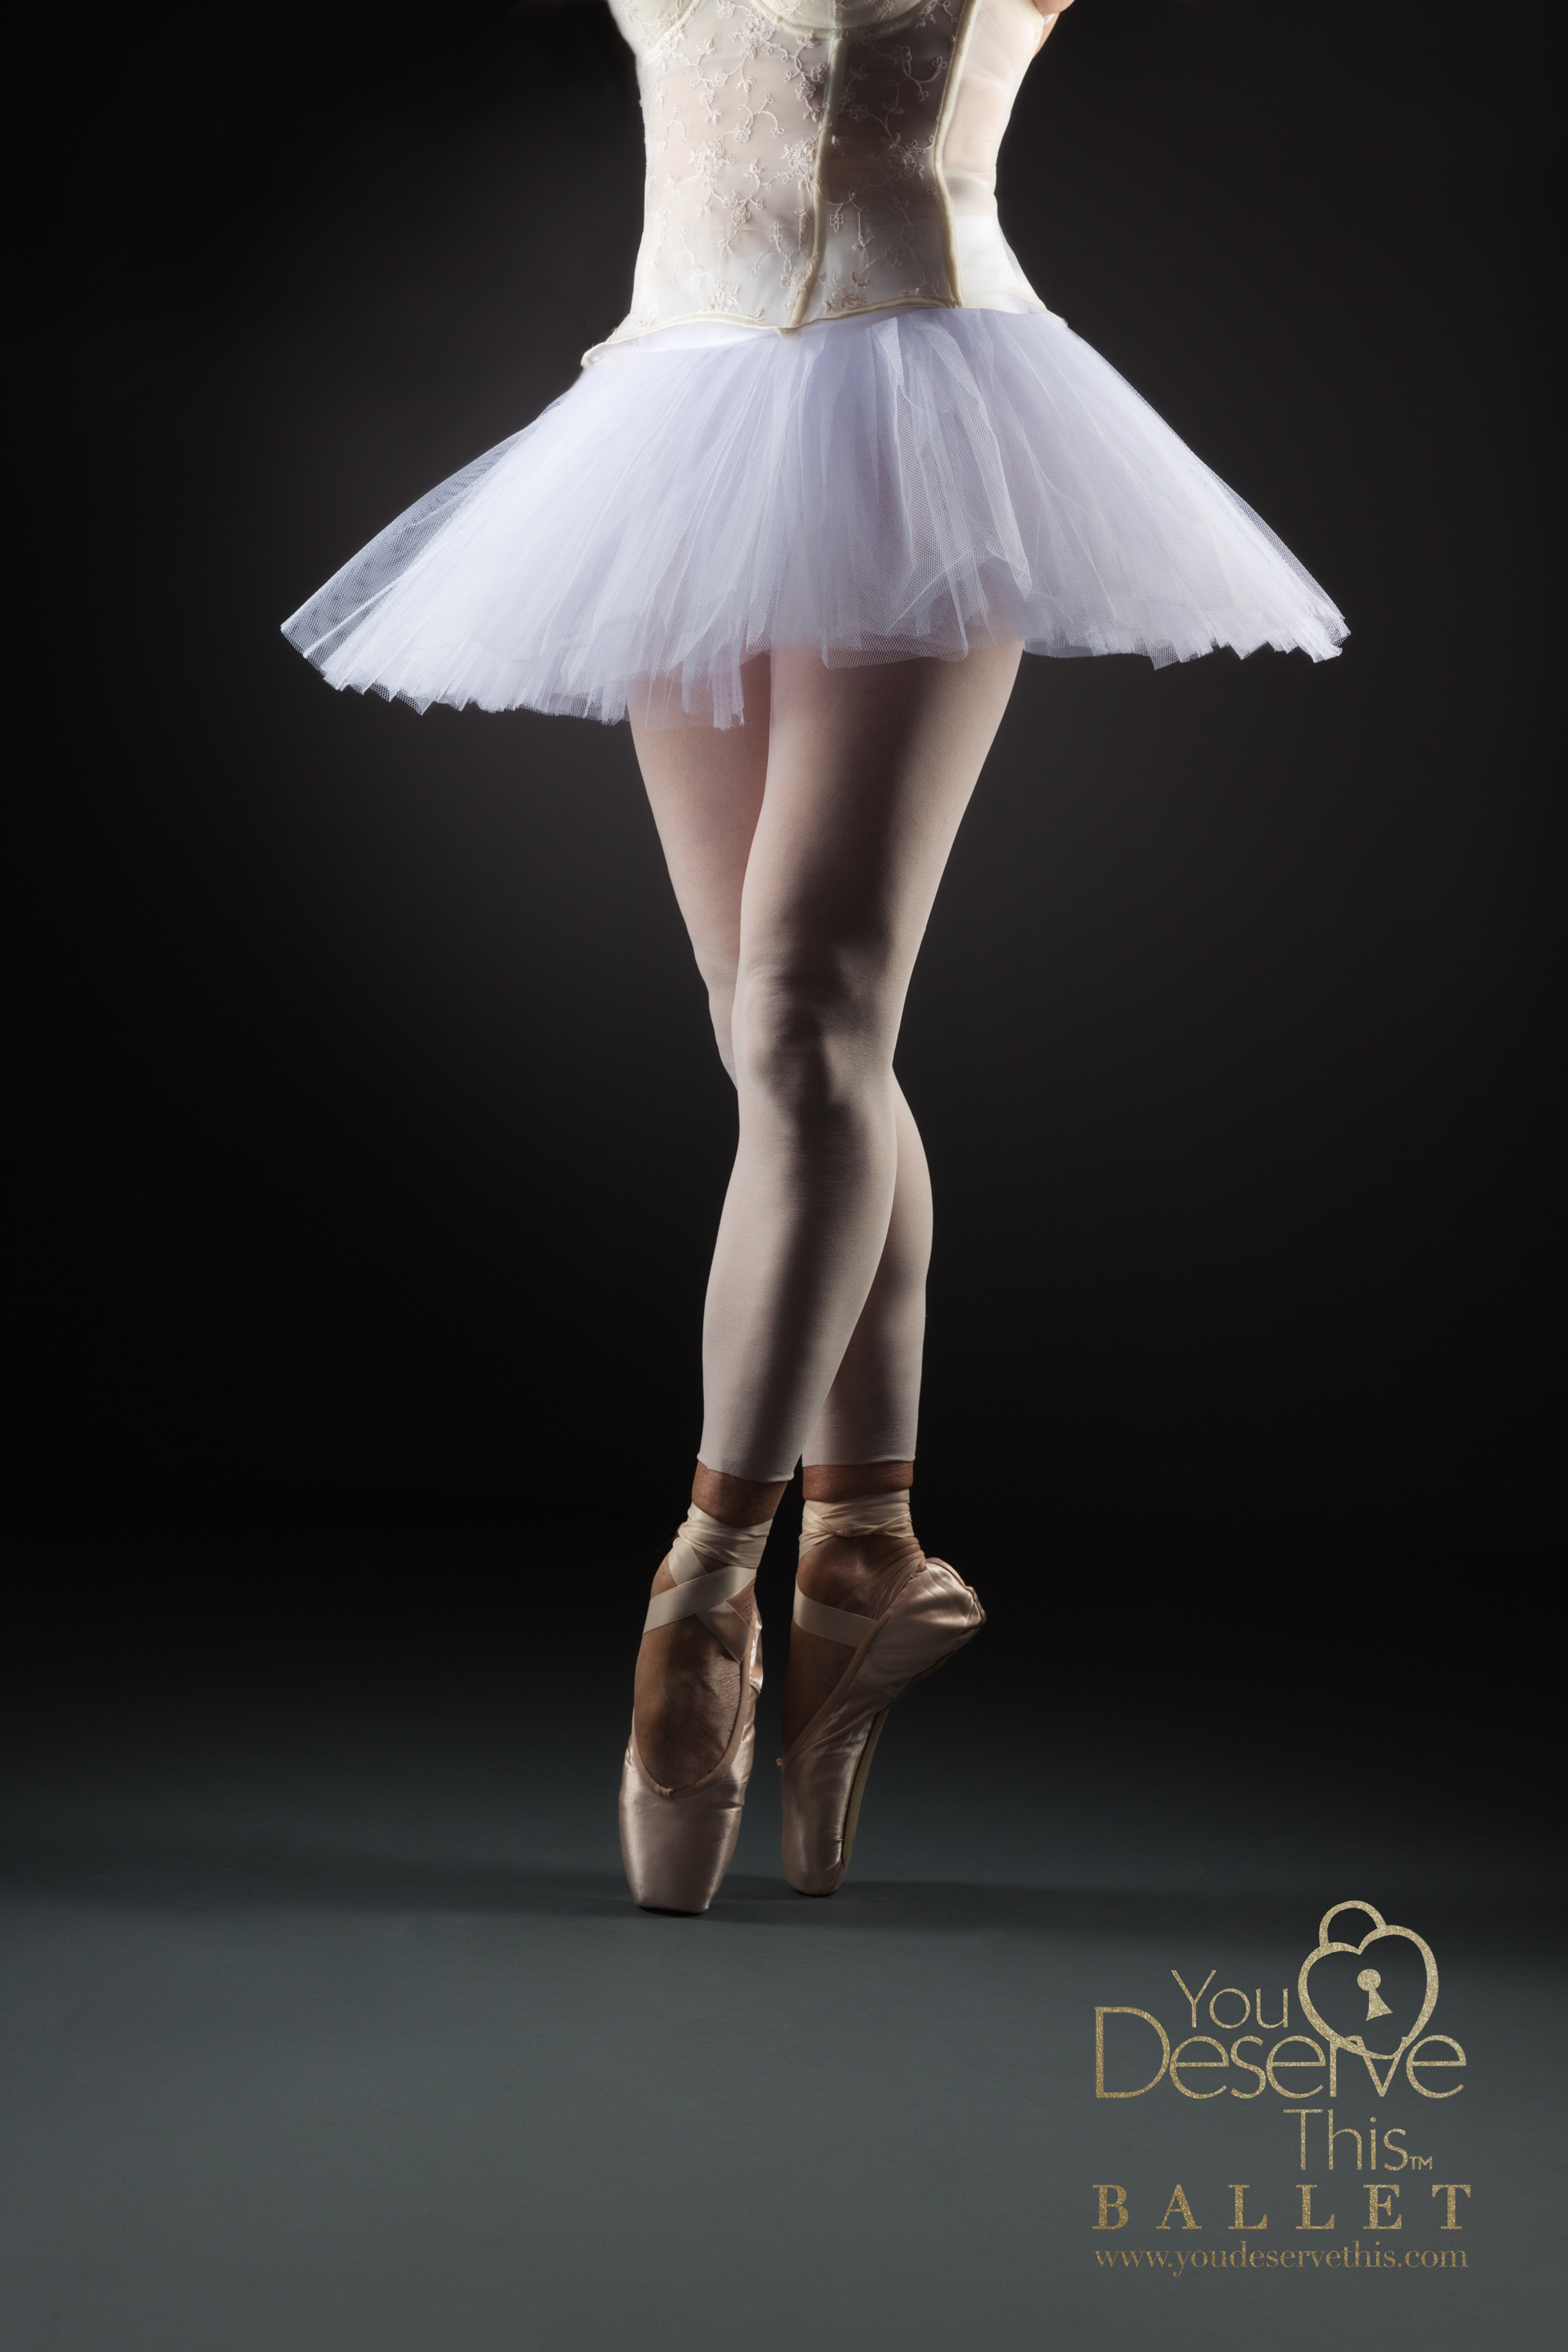 Wow! Totally amazing strength and balance. Ballet Photography from You Deserve This Photography Studio. www.youdeservethis.com